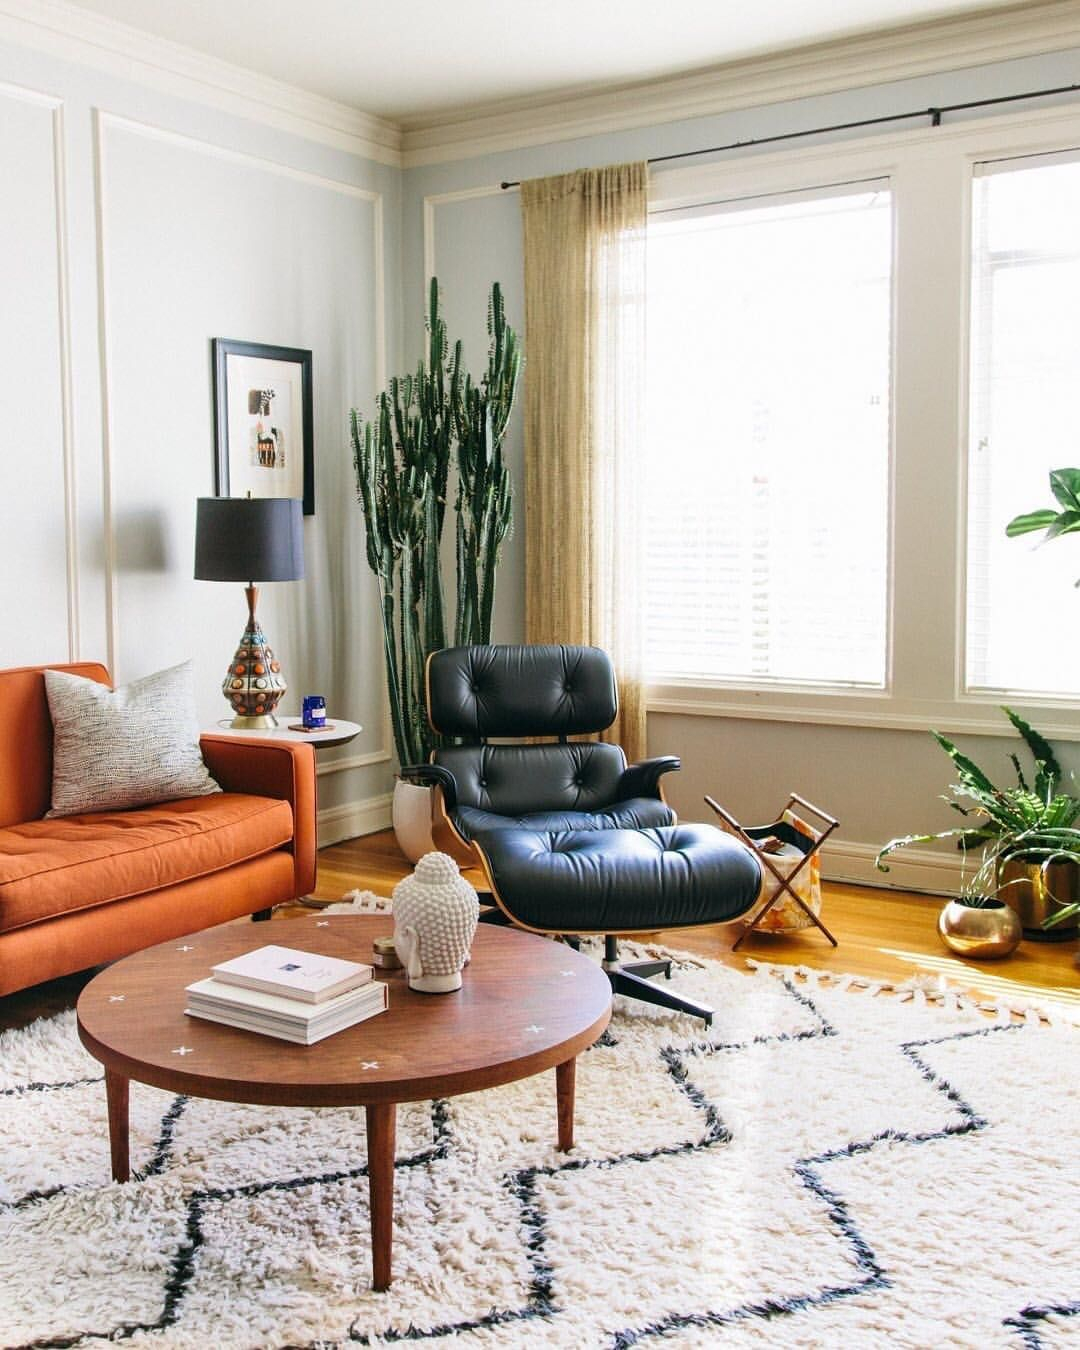 Pin Kelly Cappiello On Interior Design In 2019 Natural in sizing 1080 X 1350